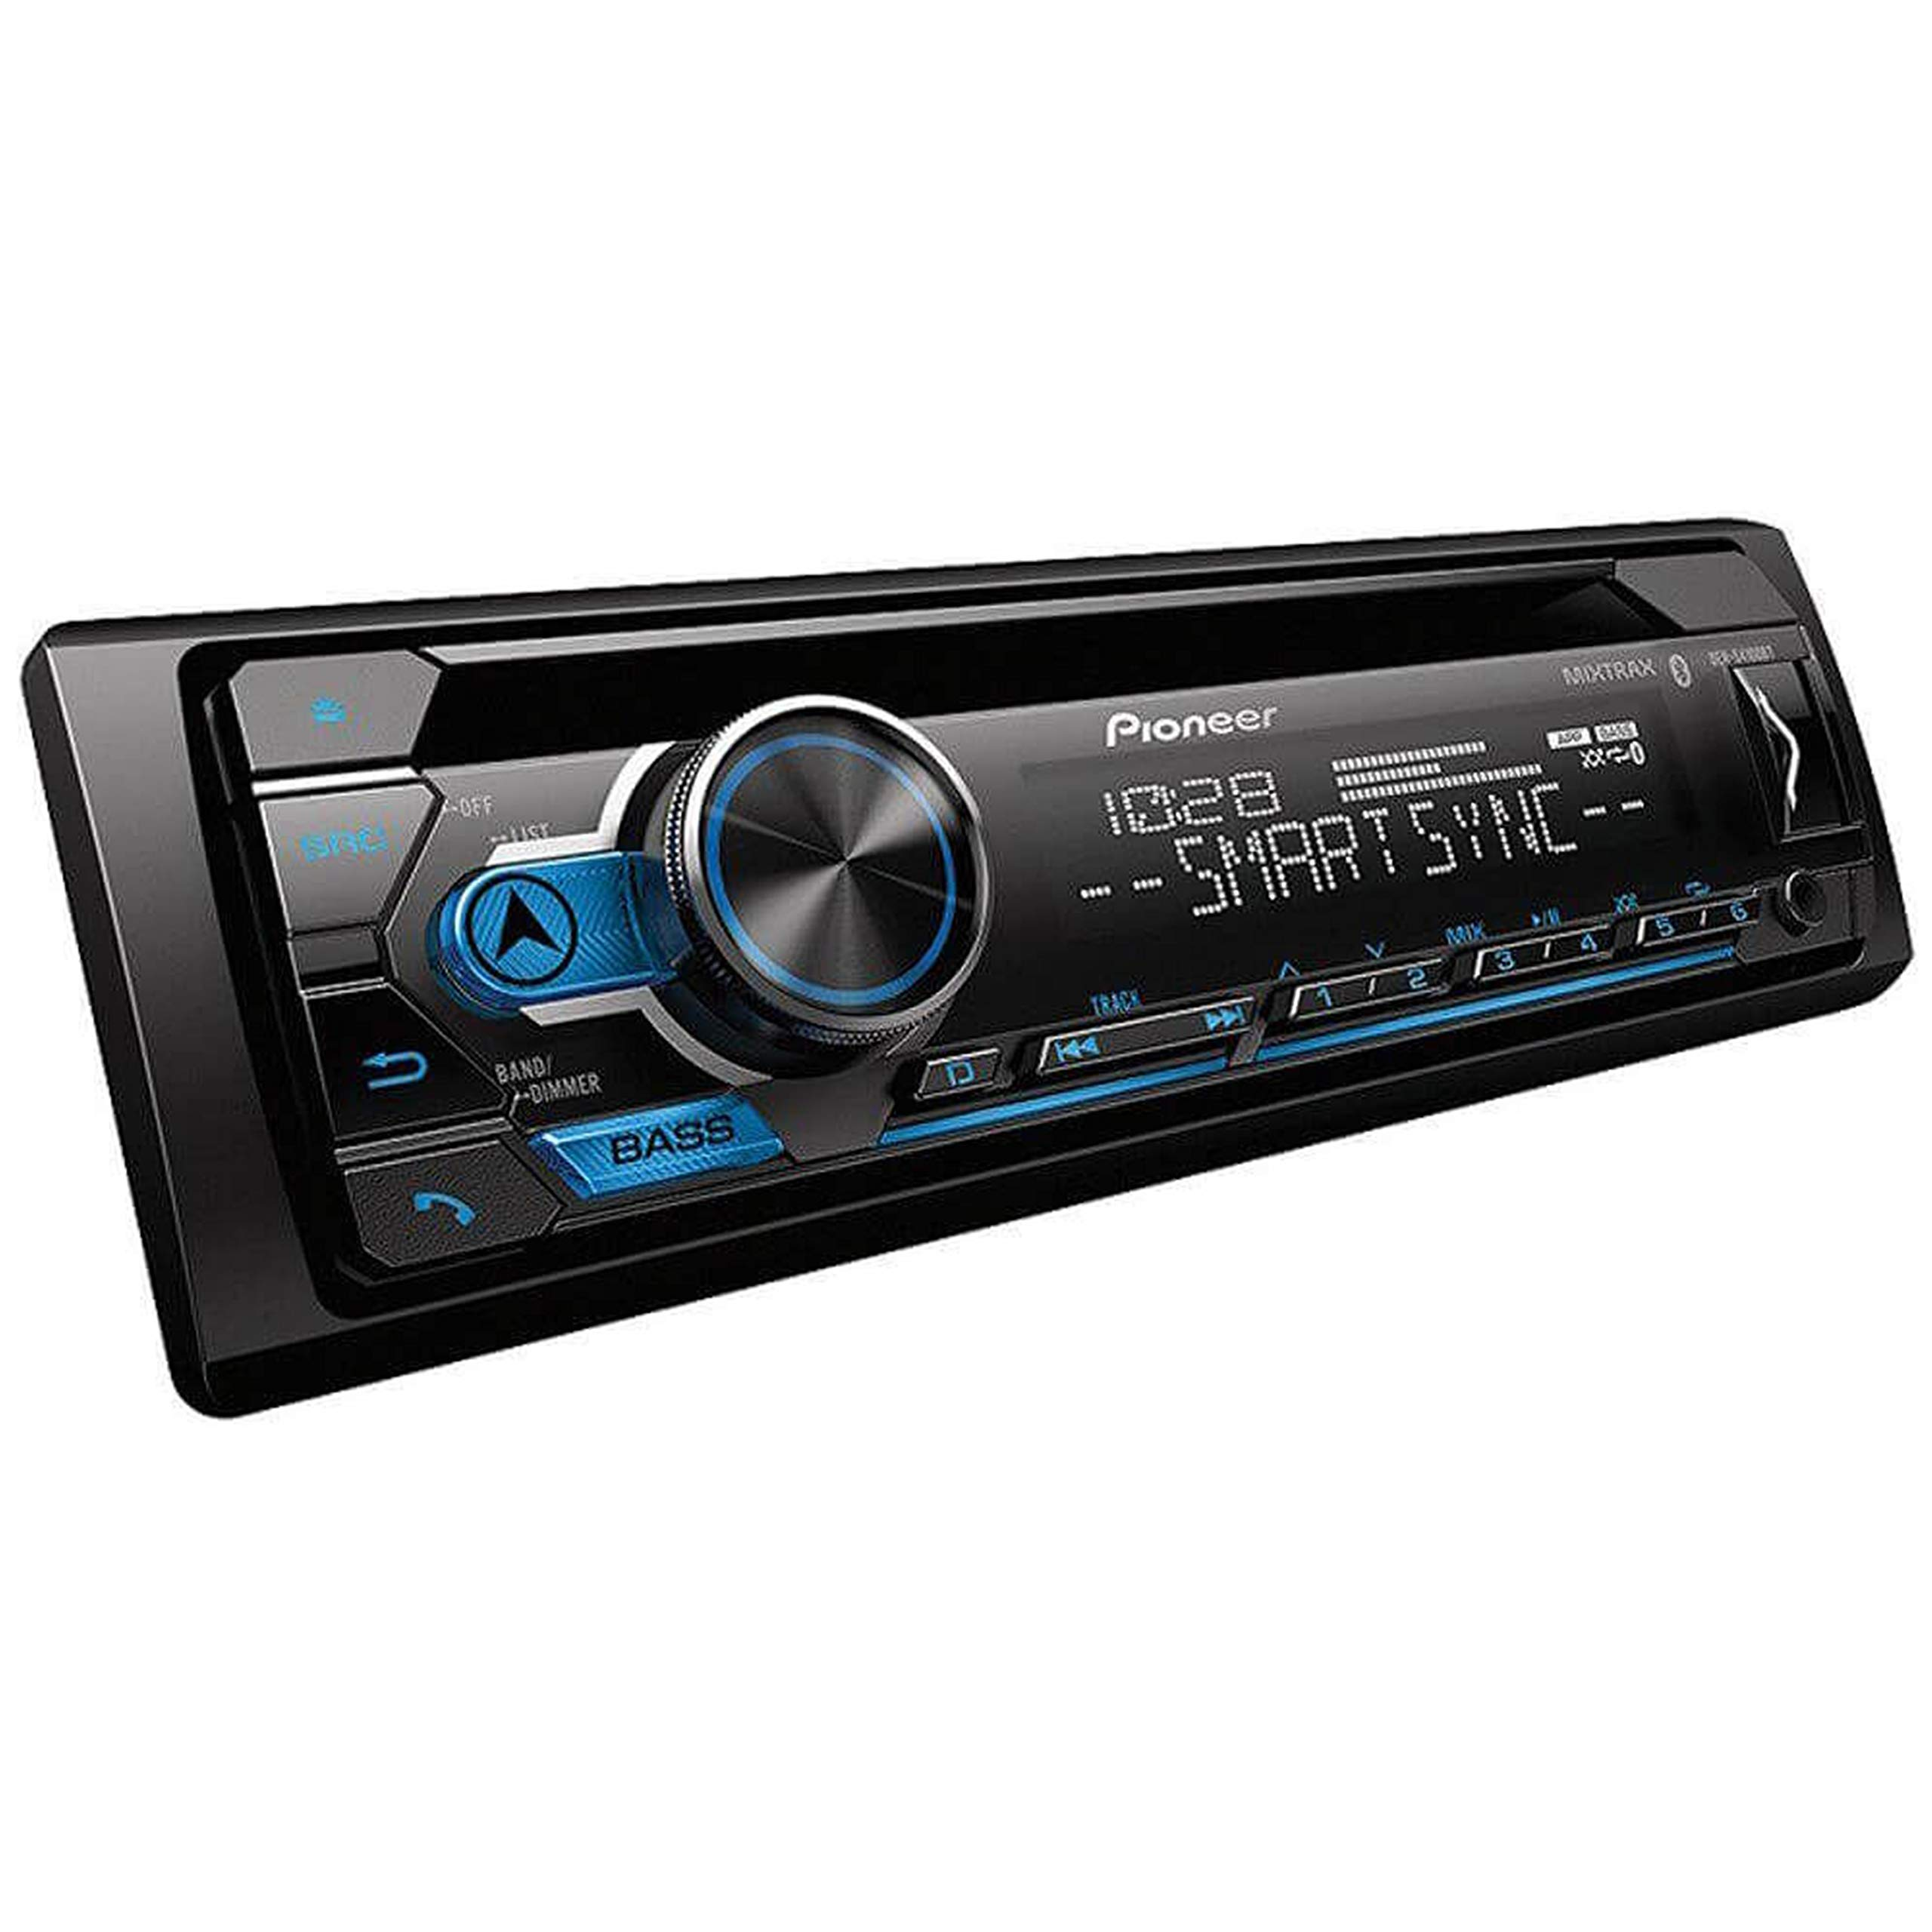 DEH S4100BT Receiver Improved Compatibility Bluetooth